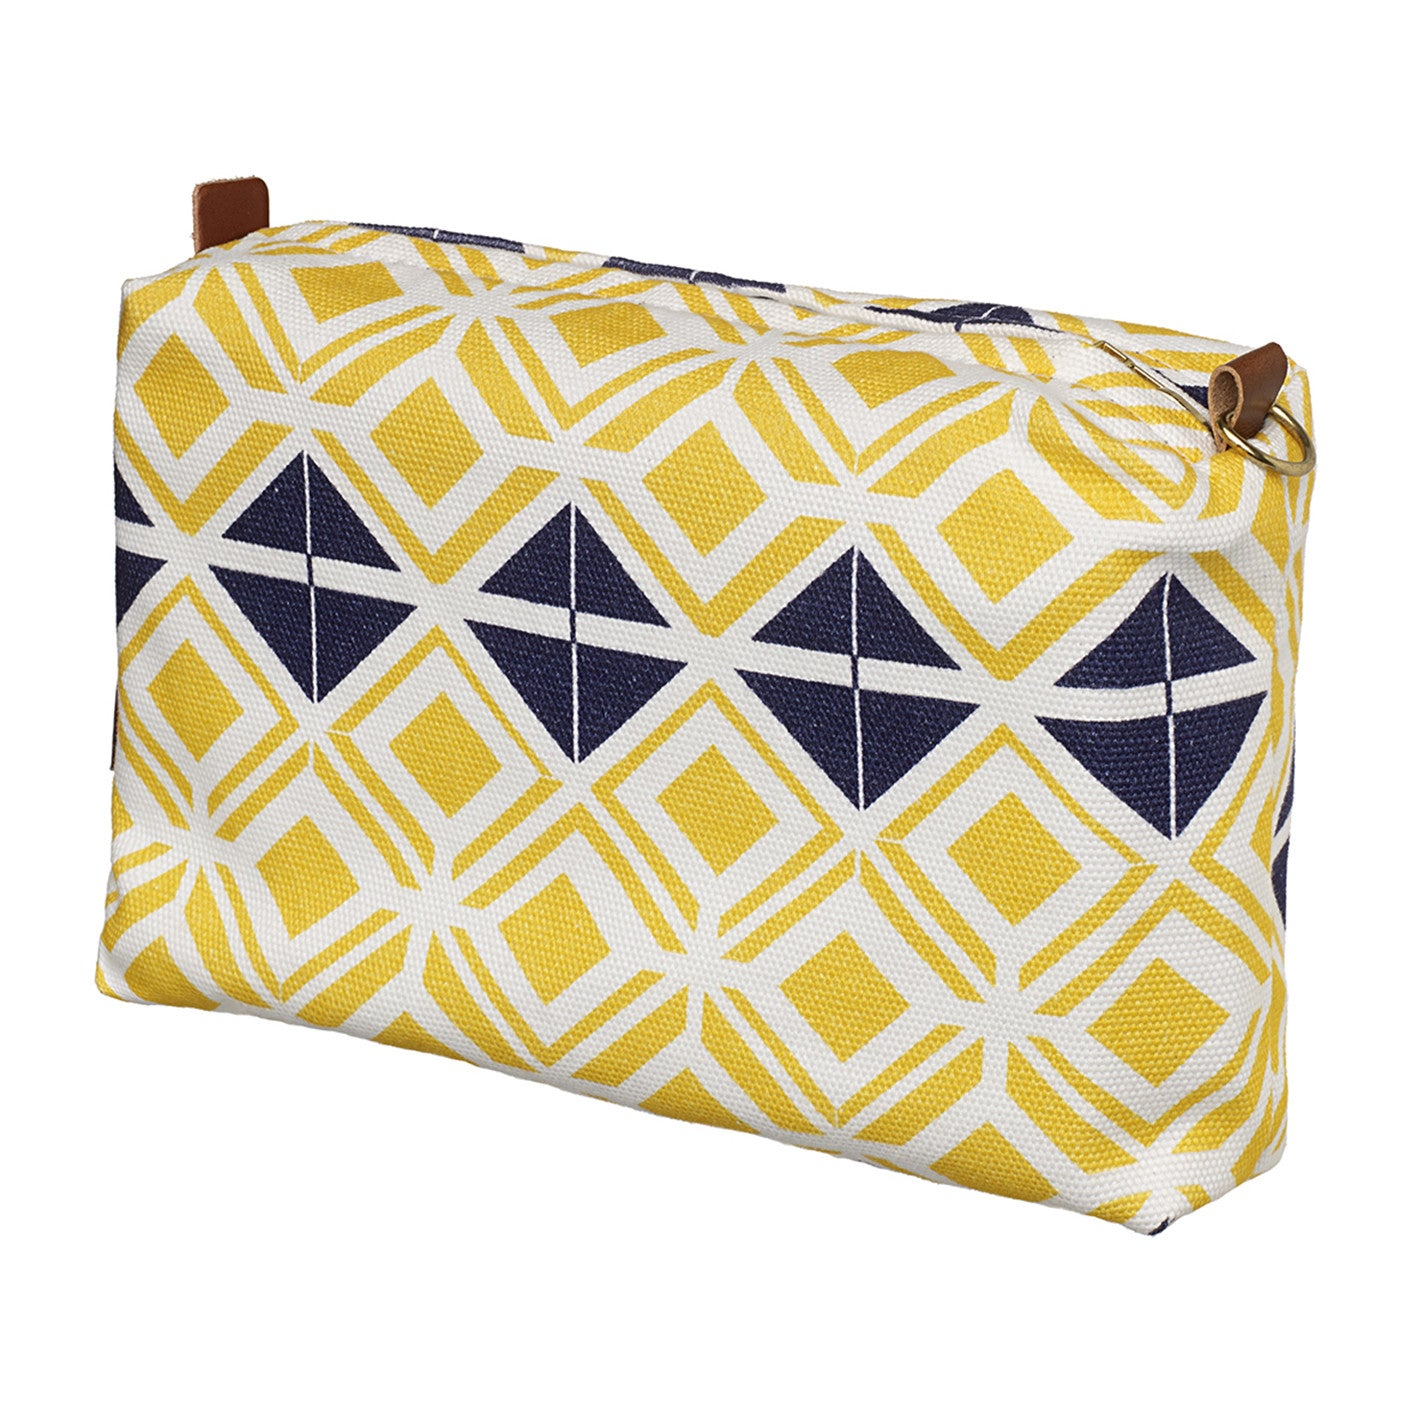 Glasswork Geometric Pattern Canvas Toiletry Bag in Bright Maize Yellow & Dark Blue